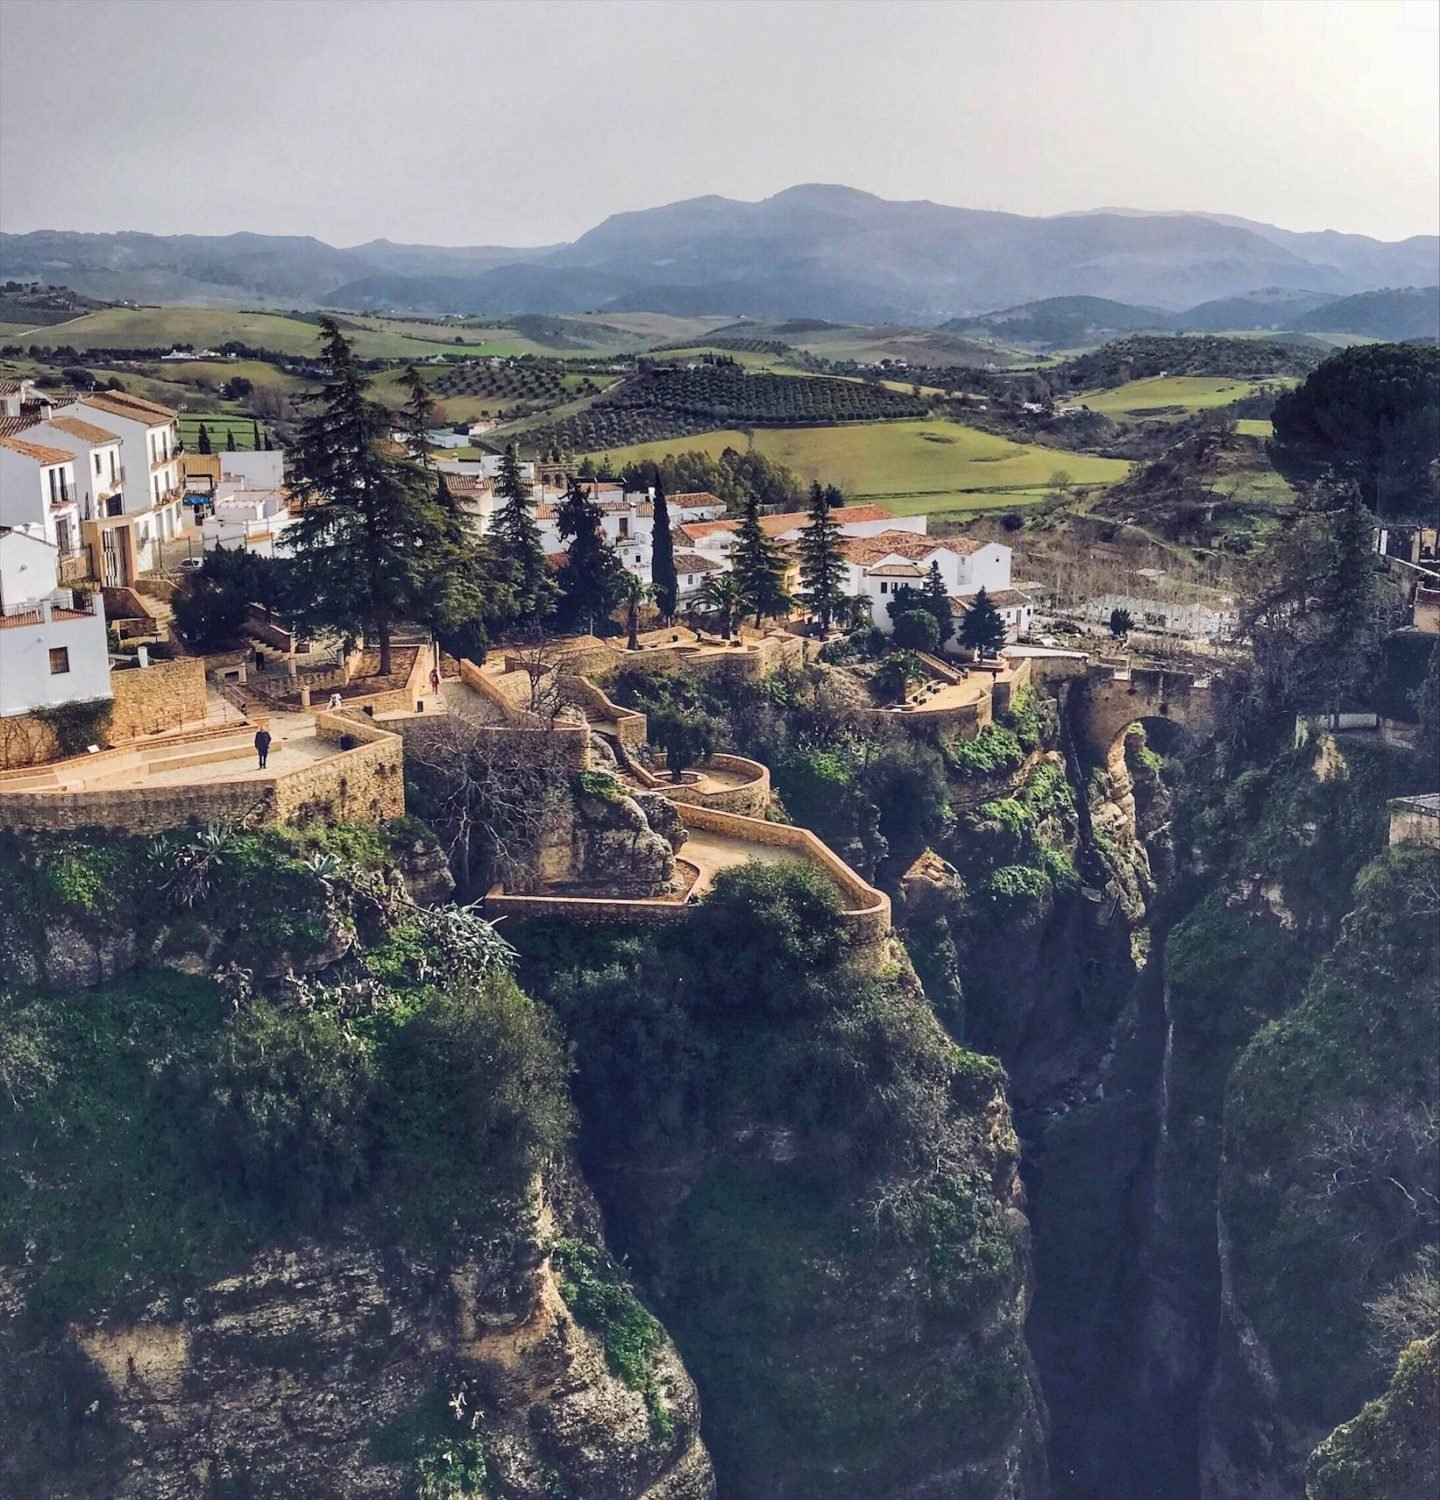 Where Should I Spend Week Vacation In Spain: Ronda, Spain: Explore Andalucía's Largest White City In